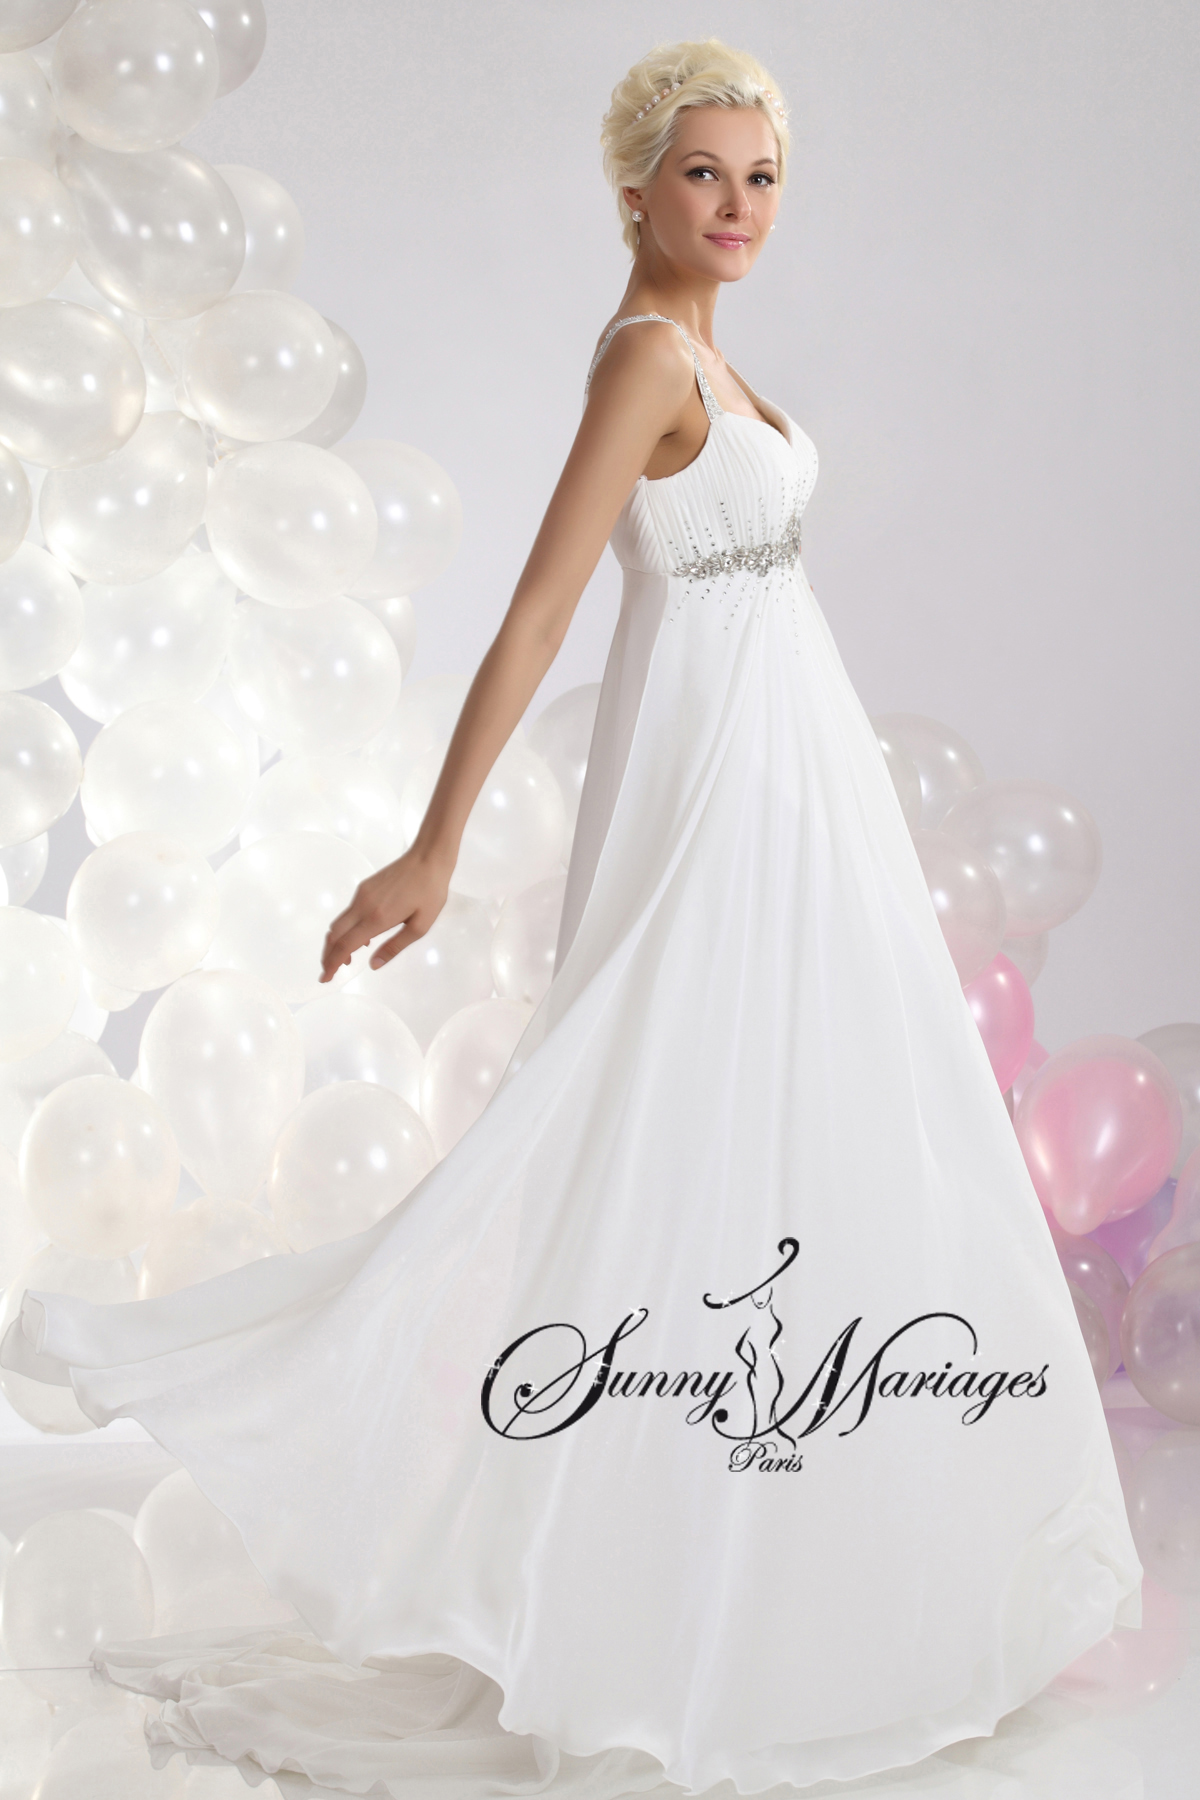 Empire du mariage robe cocktail la mode des robes de france for Robes de mariage empire uk